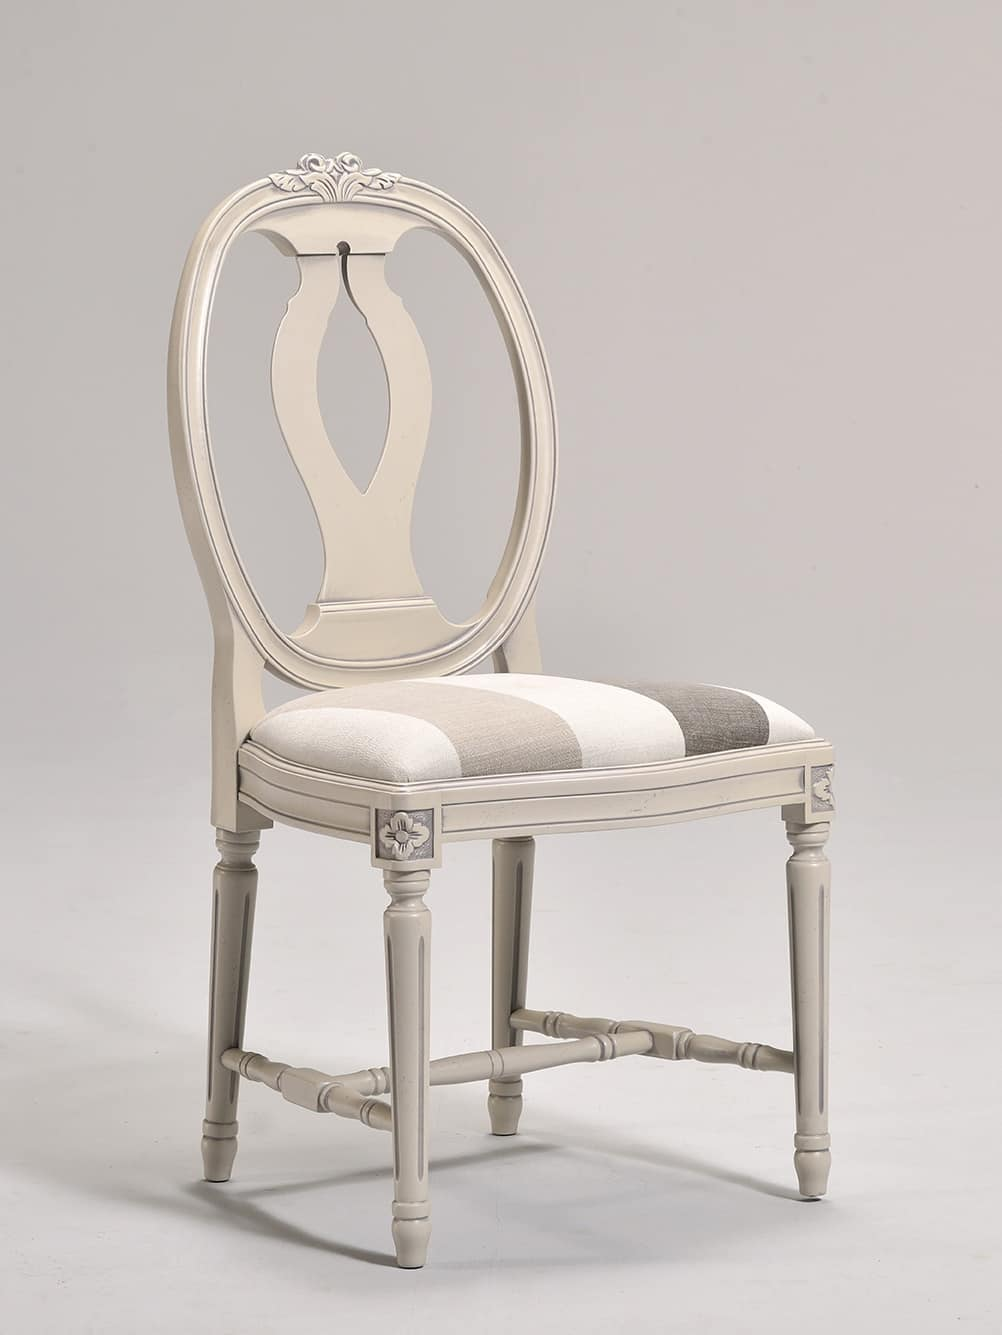 GUSTAVIA chair 8116S, Gustavian style chair with oval backrest